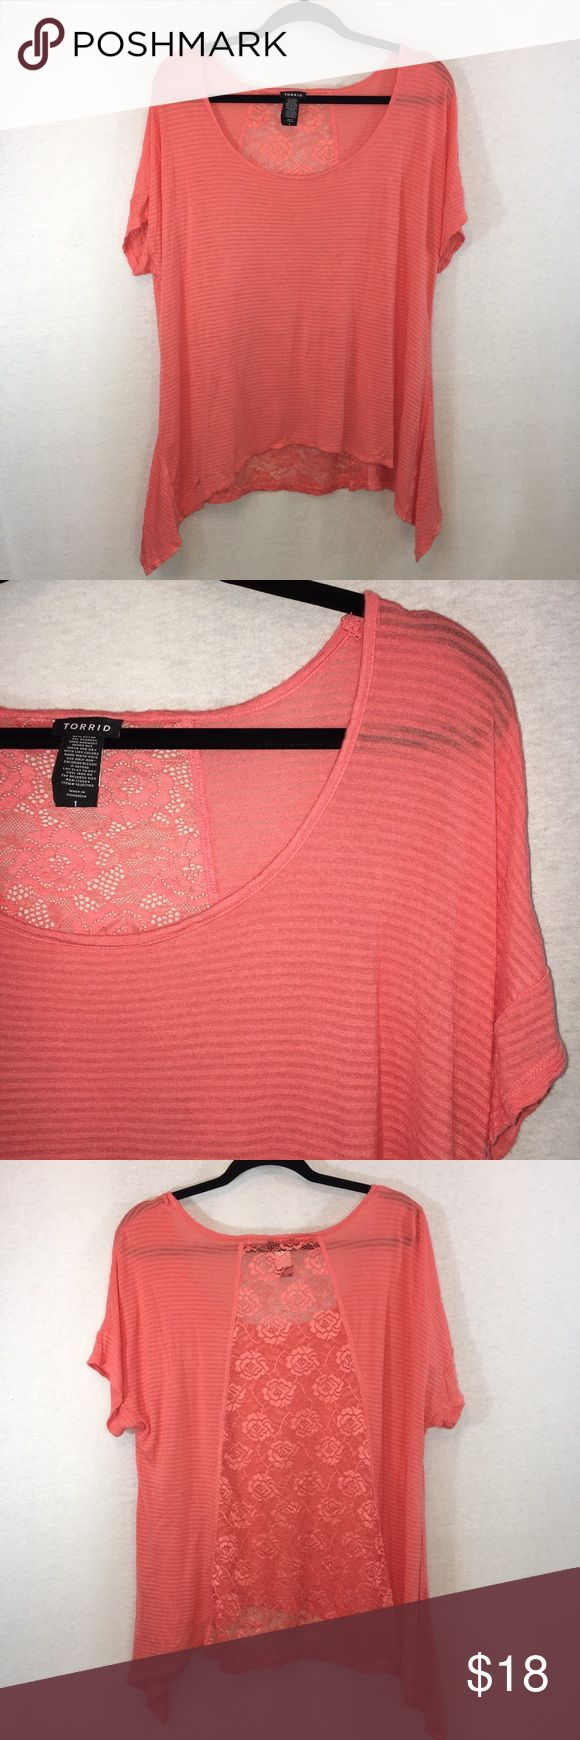 "Torrid salmon knit lace ribbed tunic sharkbite top Torrid salmon knit lace ribbed tunic shark bite top, size 1. Excellent condition. Stretch fabric measures approximately 24"" chest, 23"" front length, 31"" side length. Stretch fabric is 100% rayon. Lace is 93% nylon, 7% spandex. Smoke-free home. (A12) torrid Tops Tees - Short Sleeve"